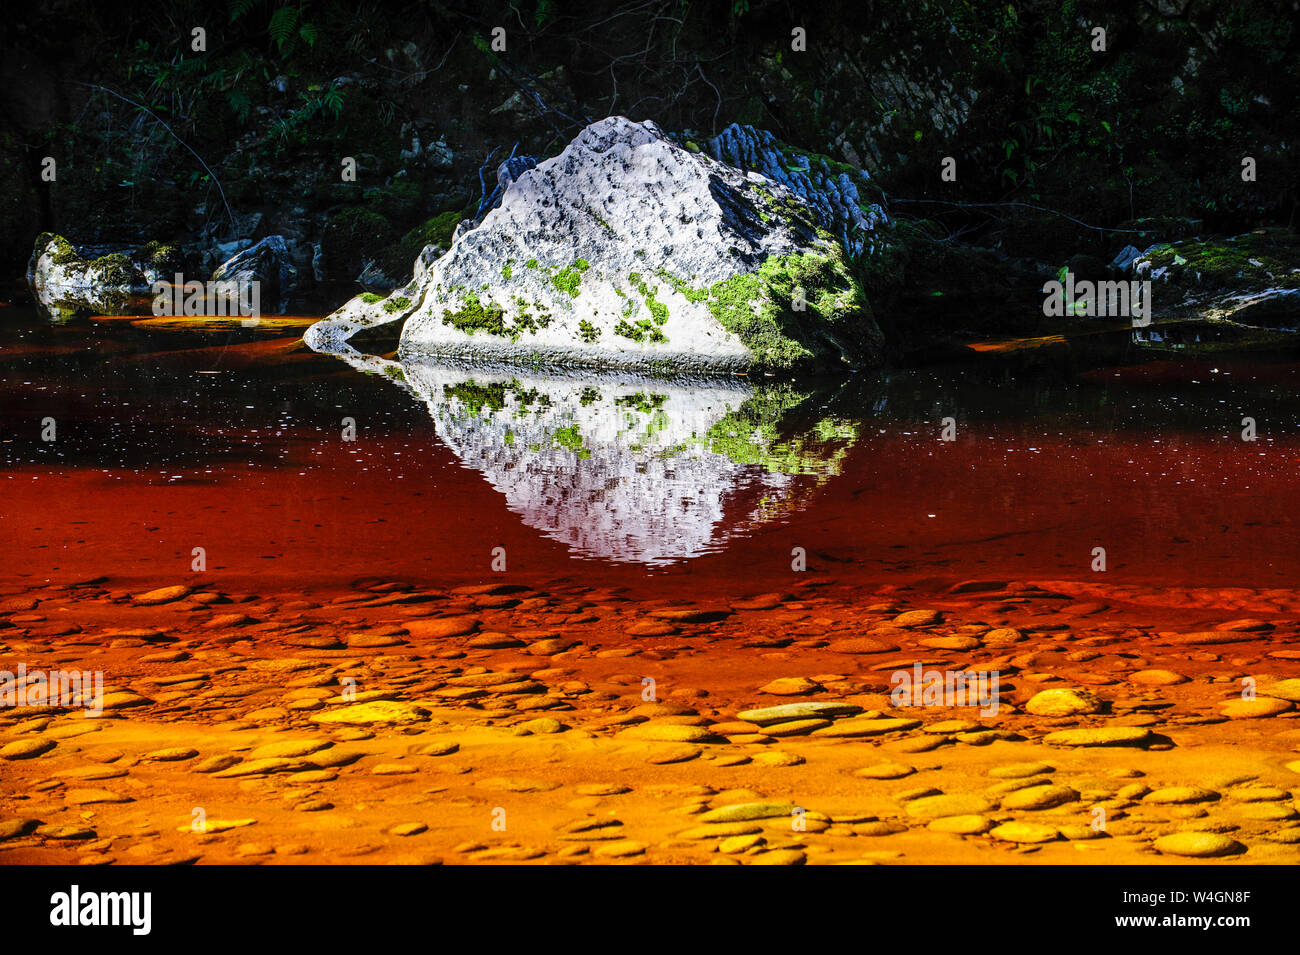 River with brown water from tree leaves running through the Oparara Basin, Karamea, South Island, New Zealand Stock Photo